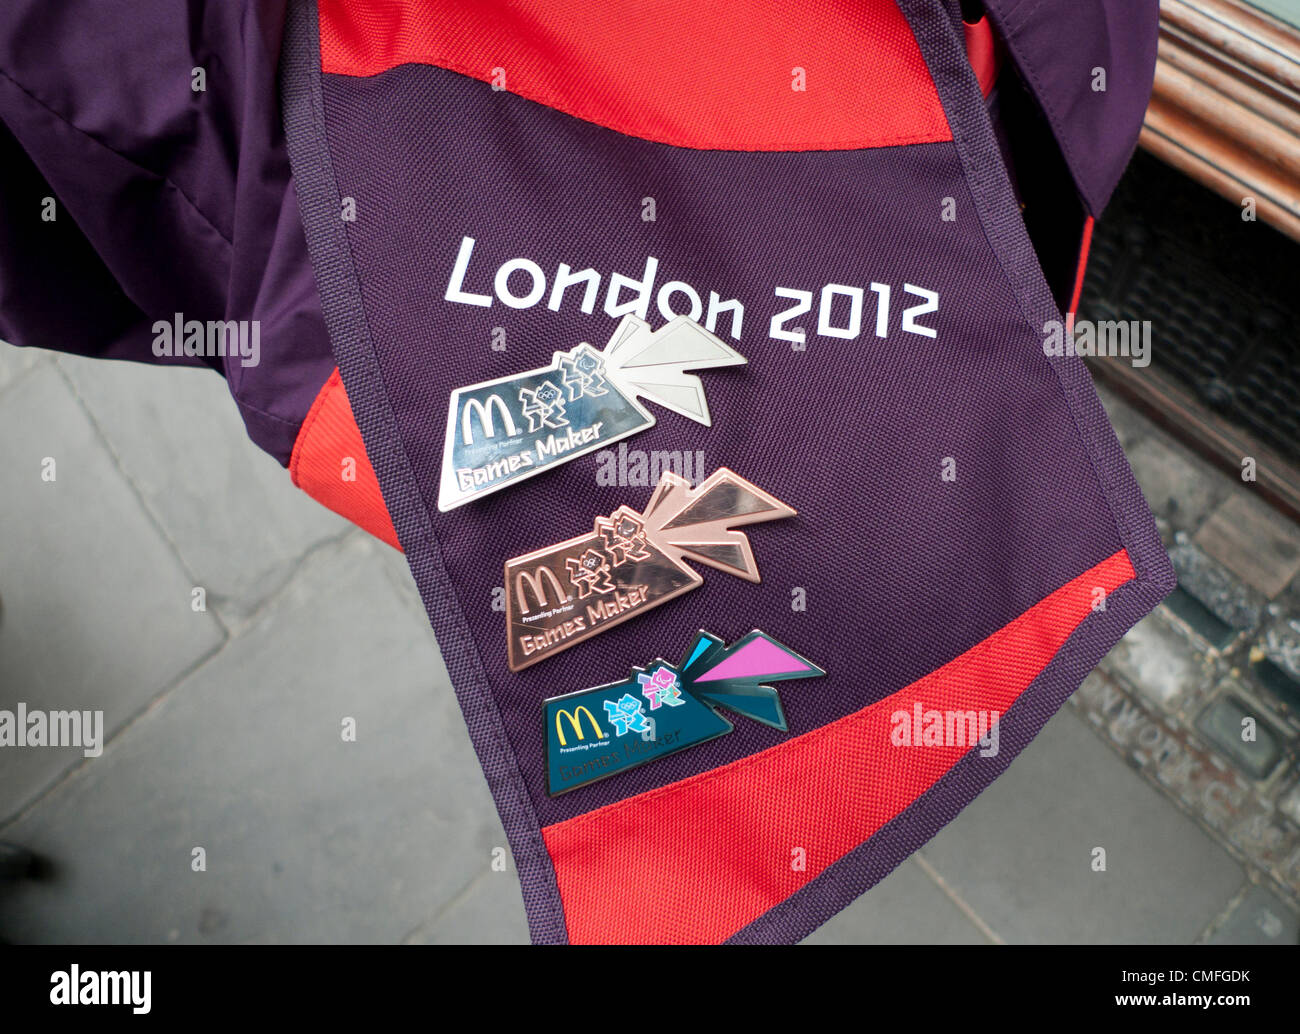 2 Aug 2012- CARDIFF WALES UK- A  2012 London Olympic Games volunteer's purple and red uniform adorned with sponsor - Stock Image